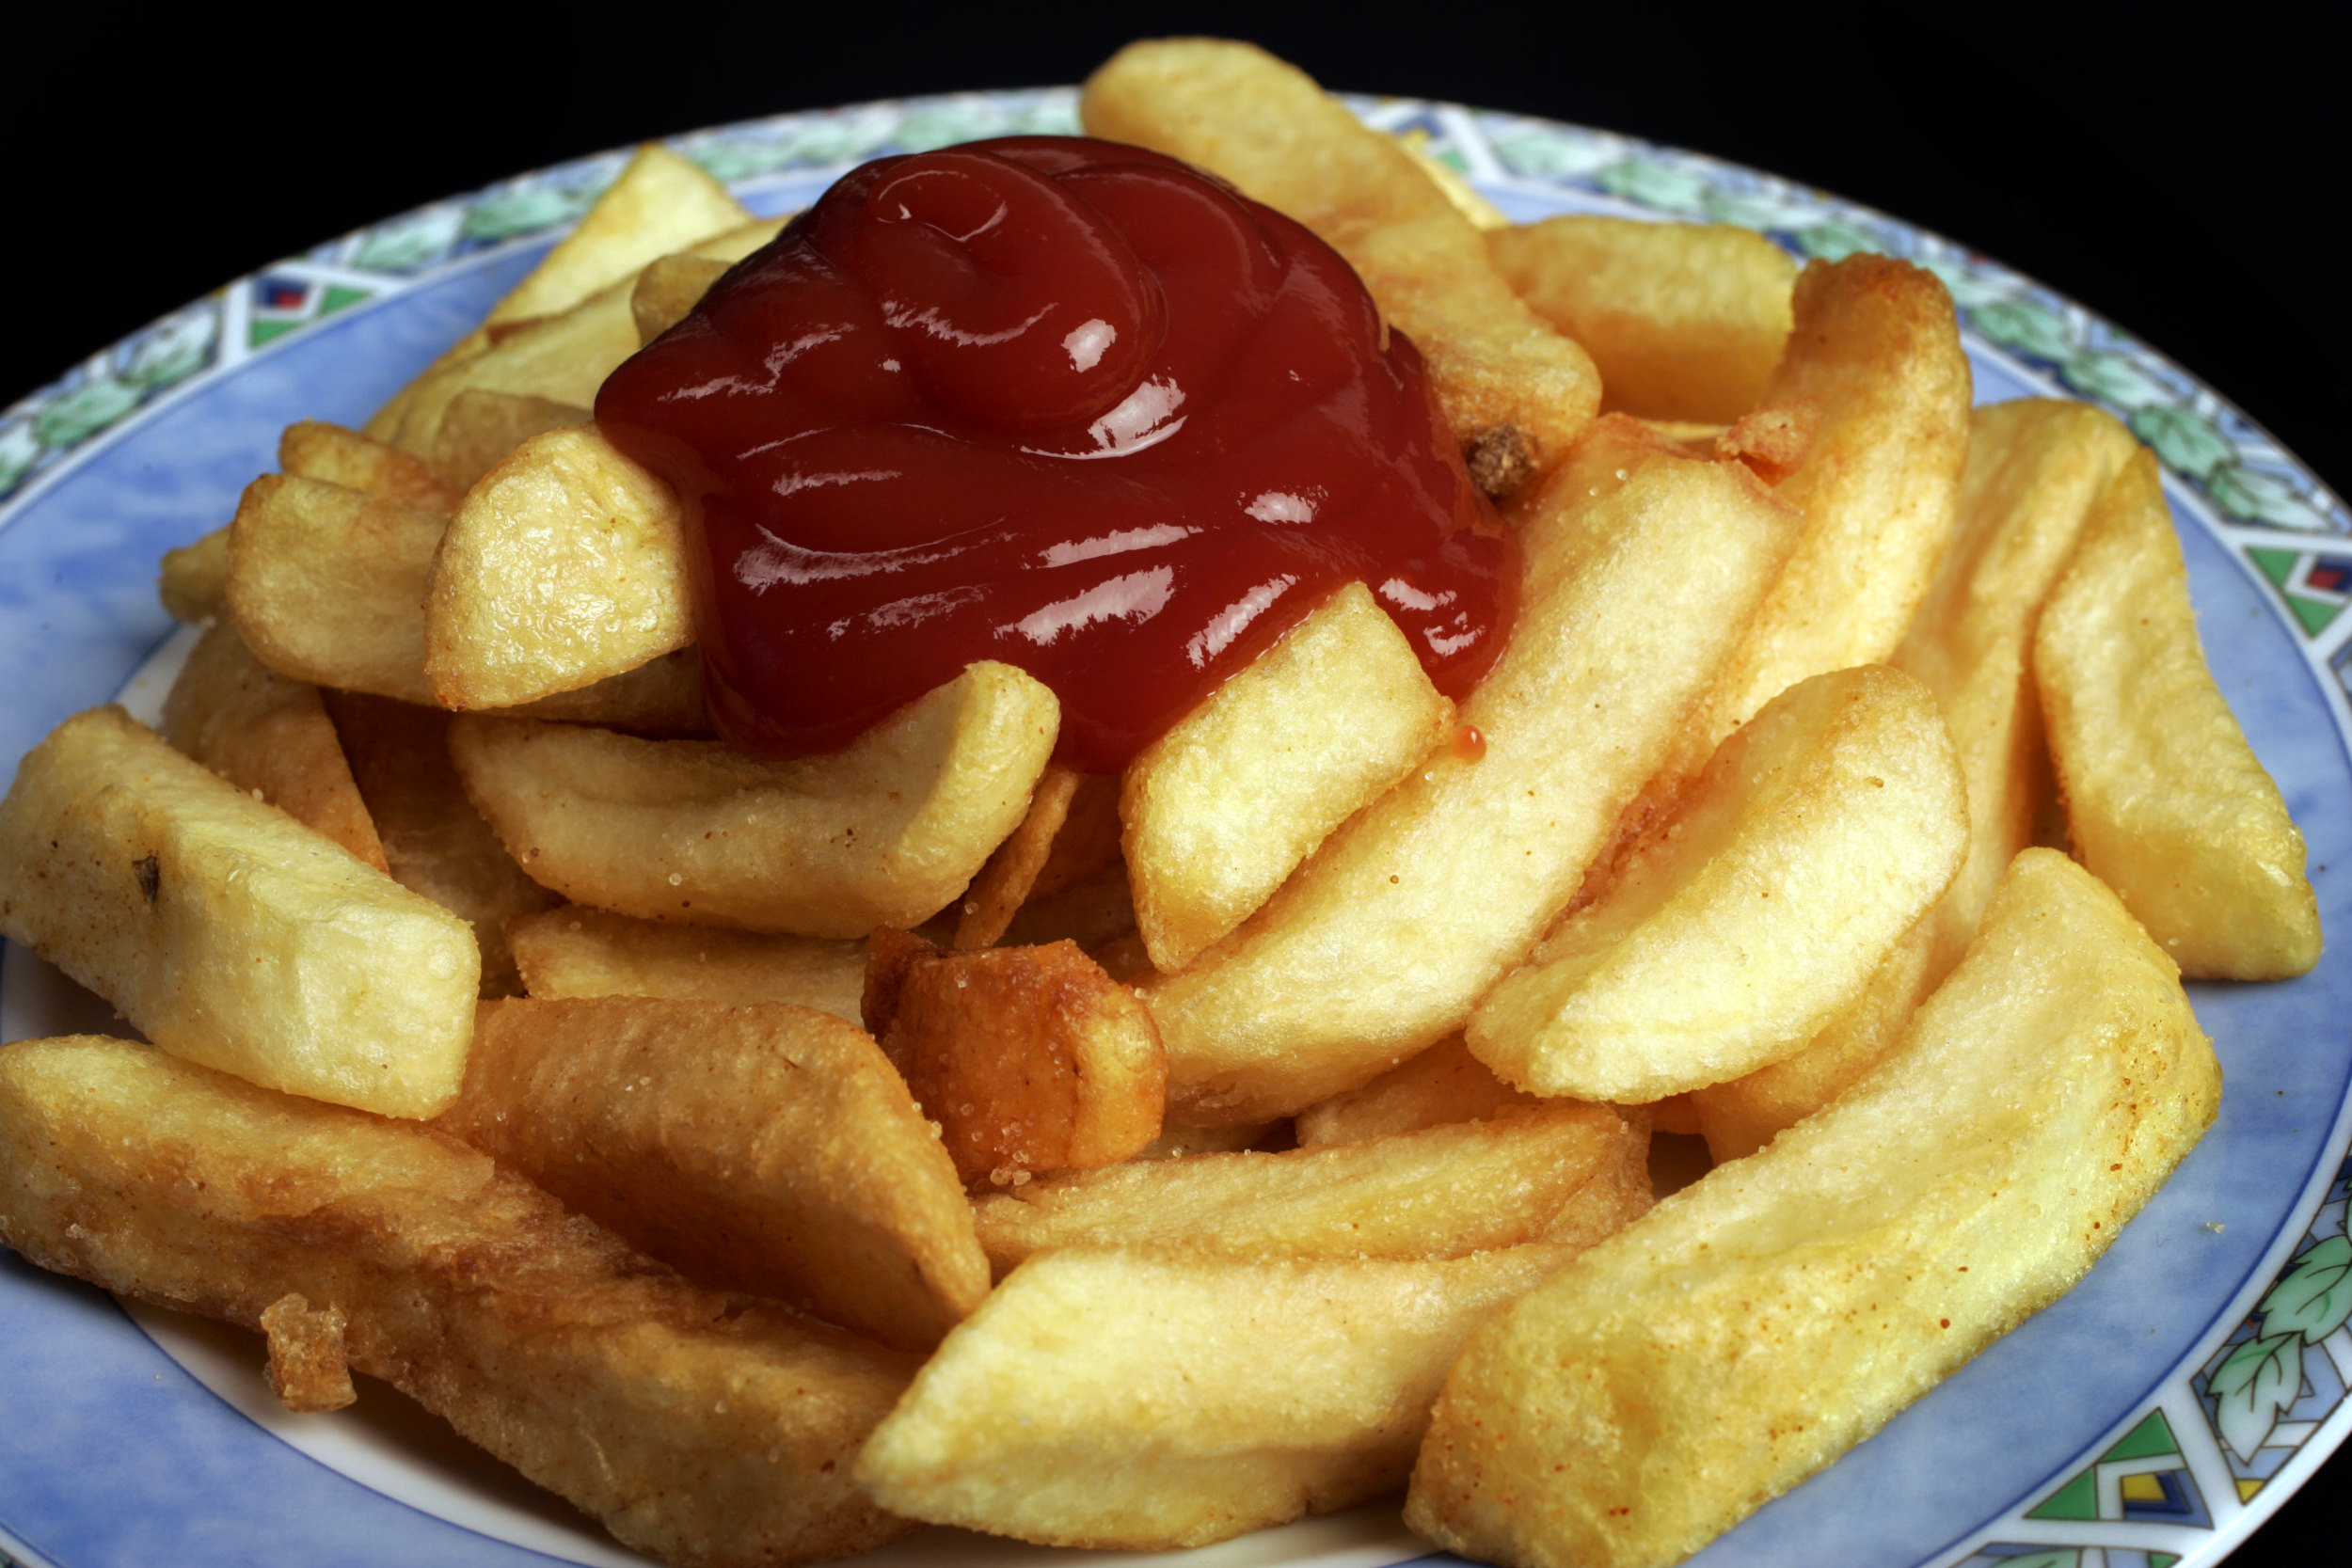 patat fries fastfood frituur ketchup ongezond